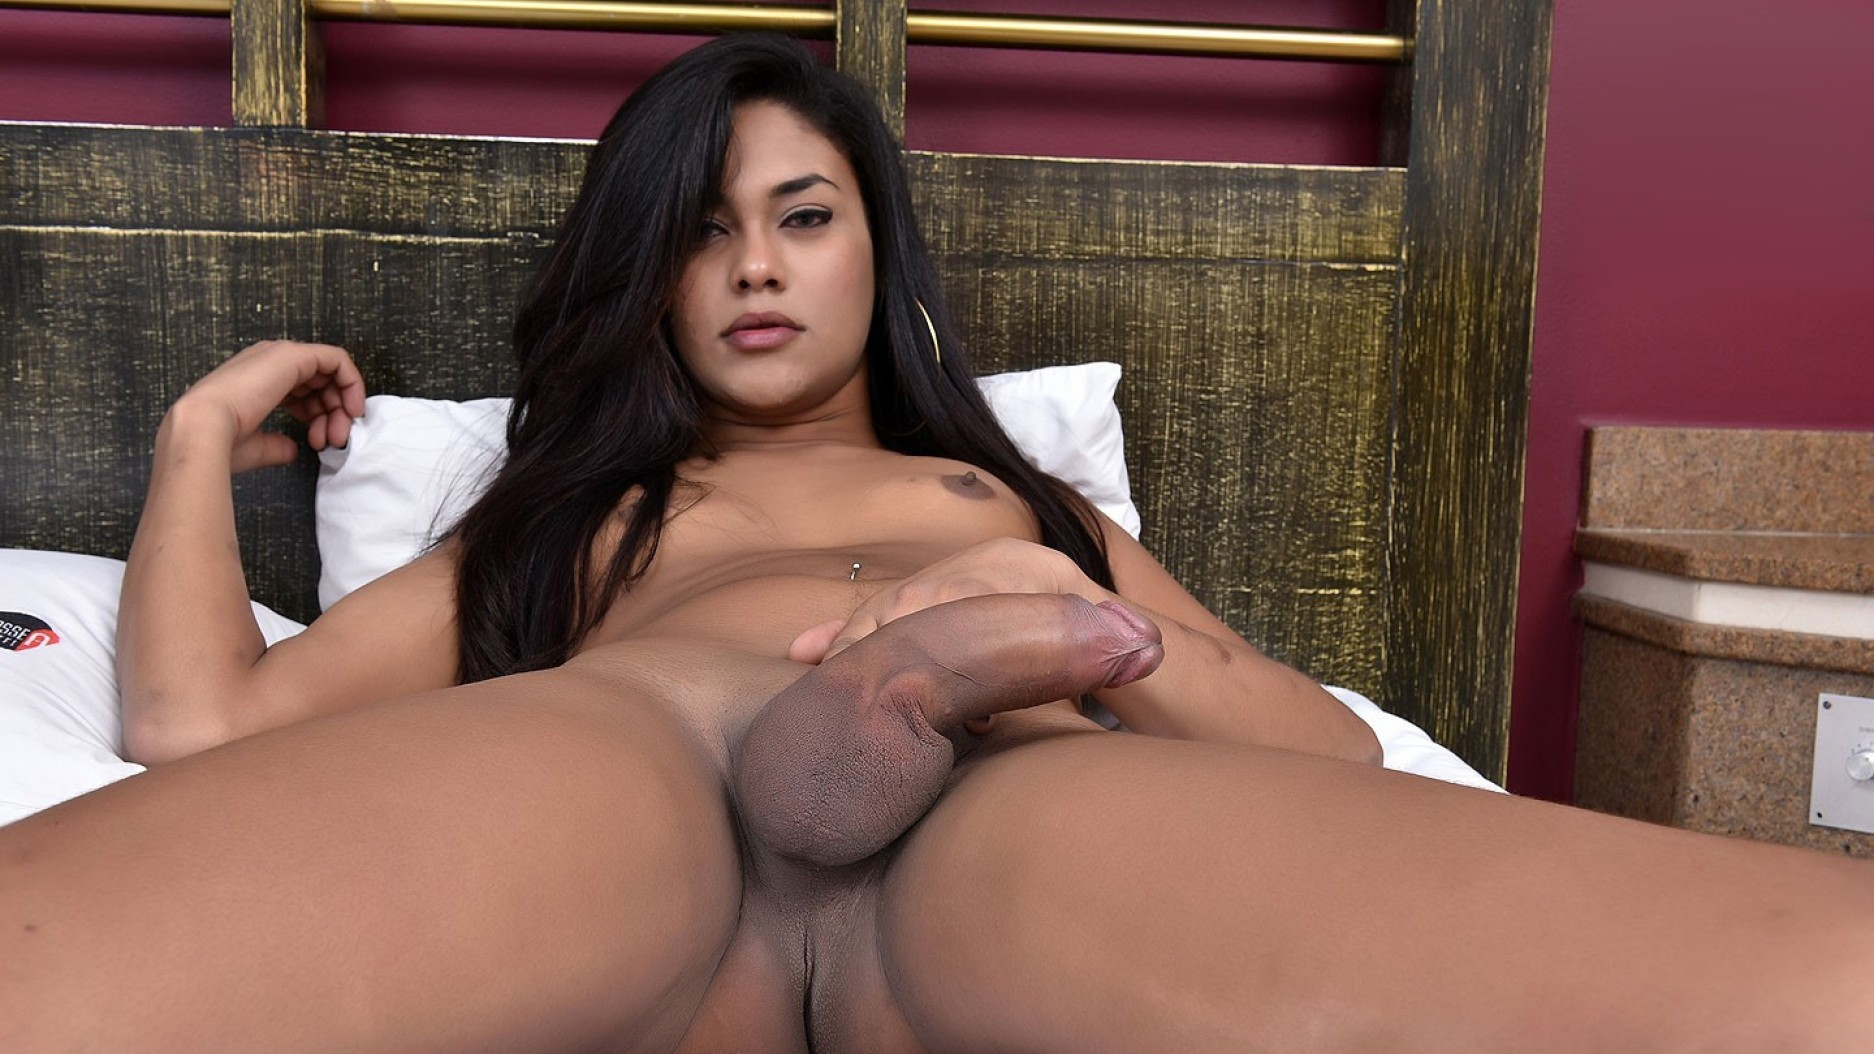 Filipina squirt tube search videos